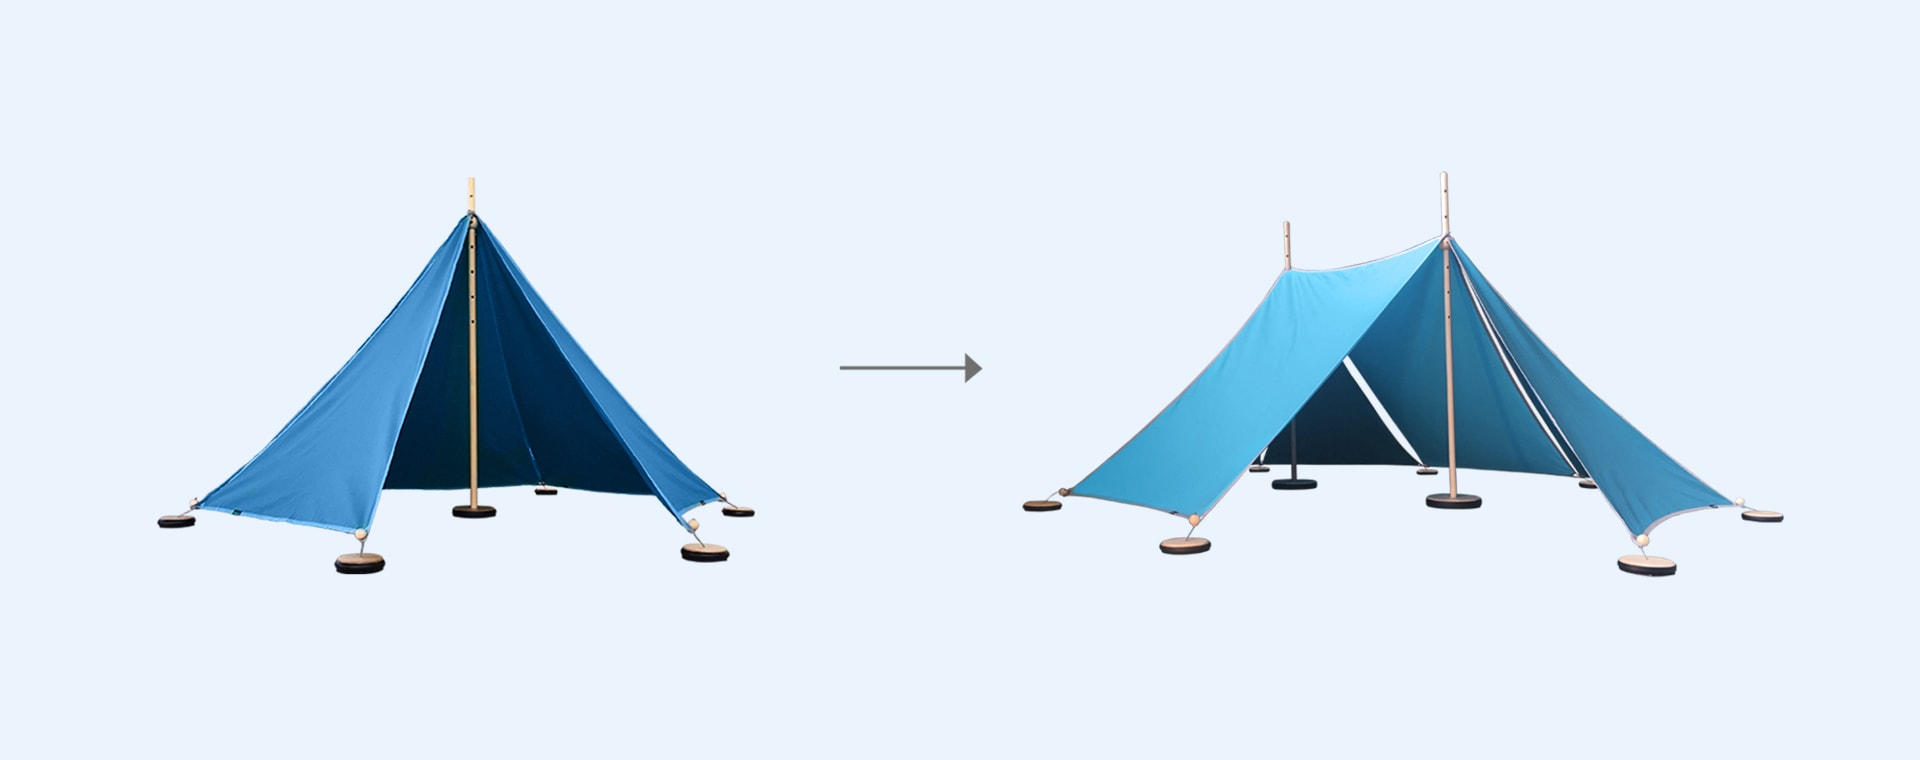 Turquoise abel Tent Extension Kit 1-2 with Pegs and Weights